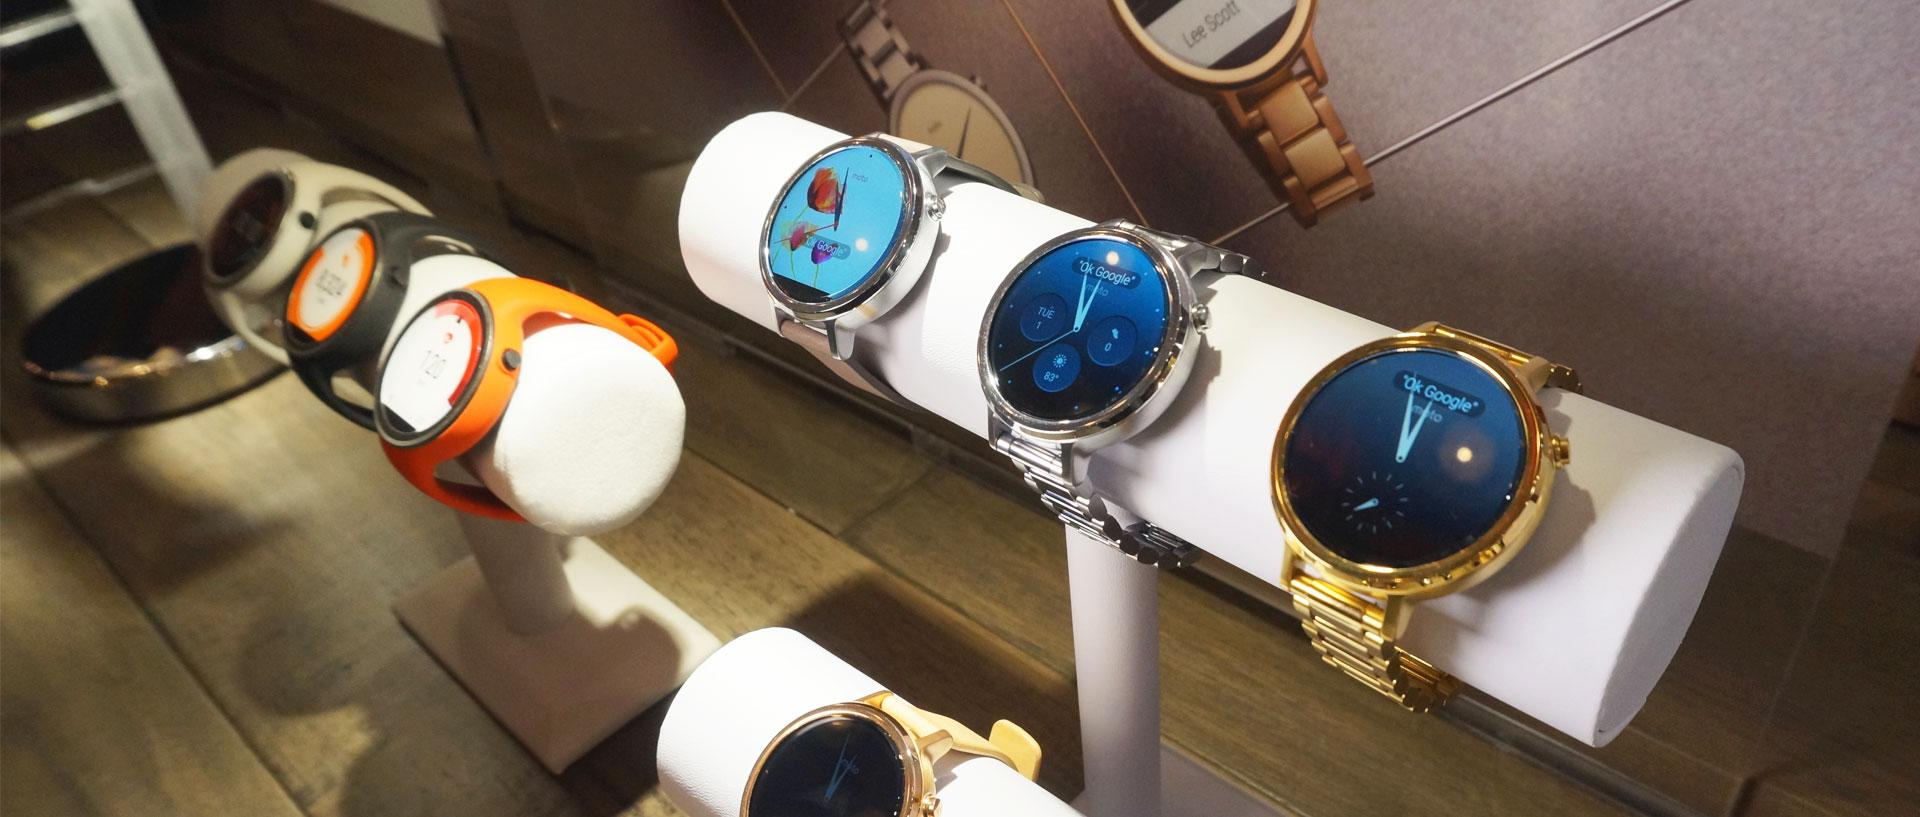 Hands on with the Motorola Moto 360 and Moto 360 Sport Smartwatches